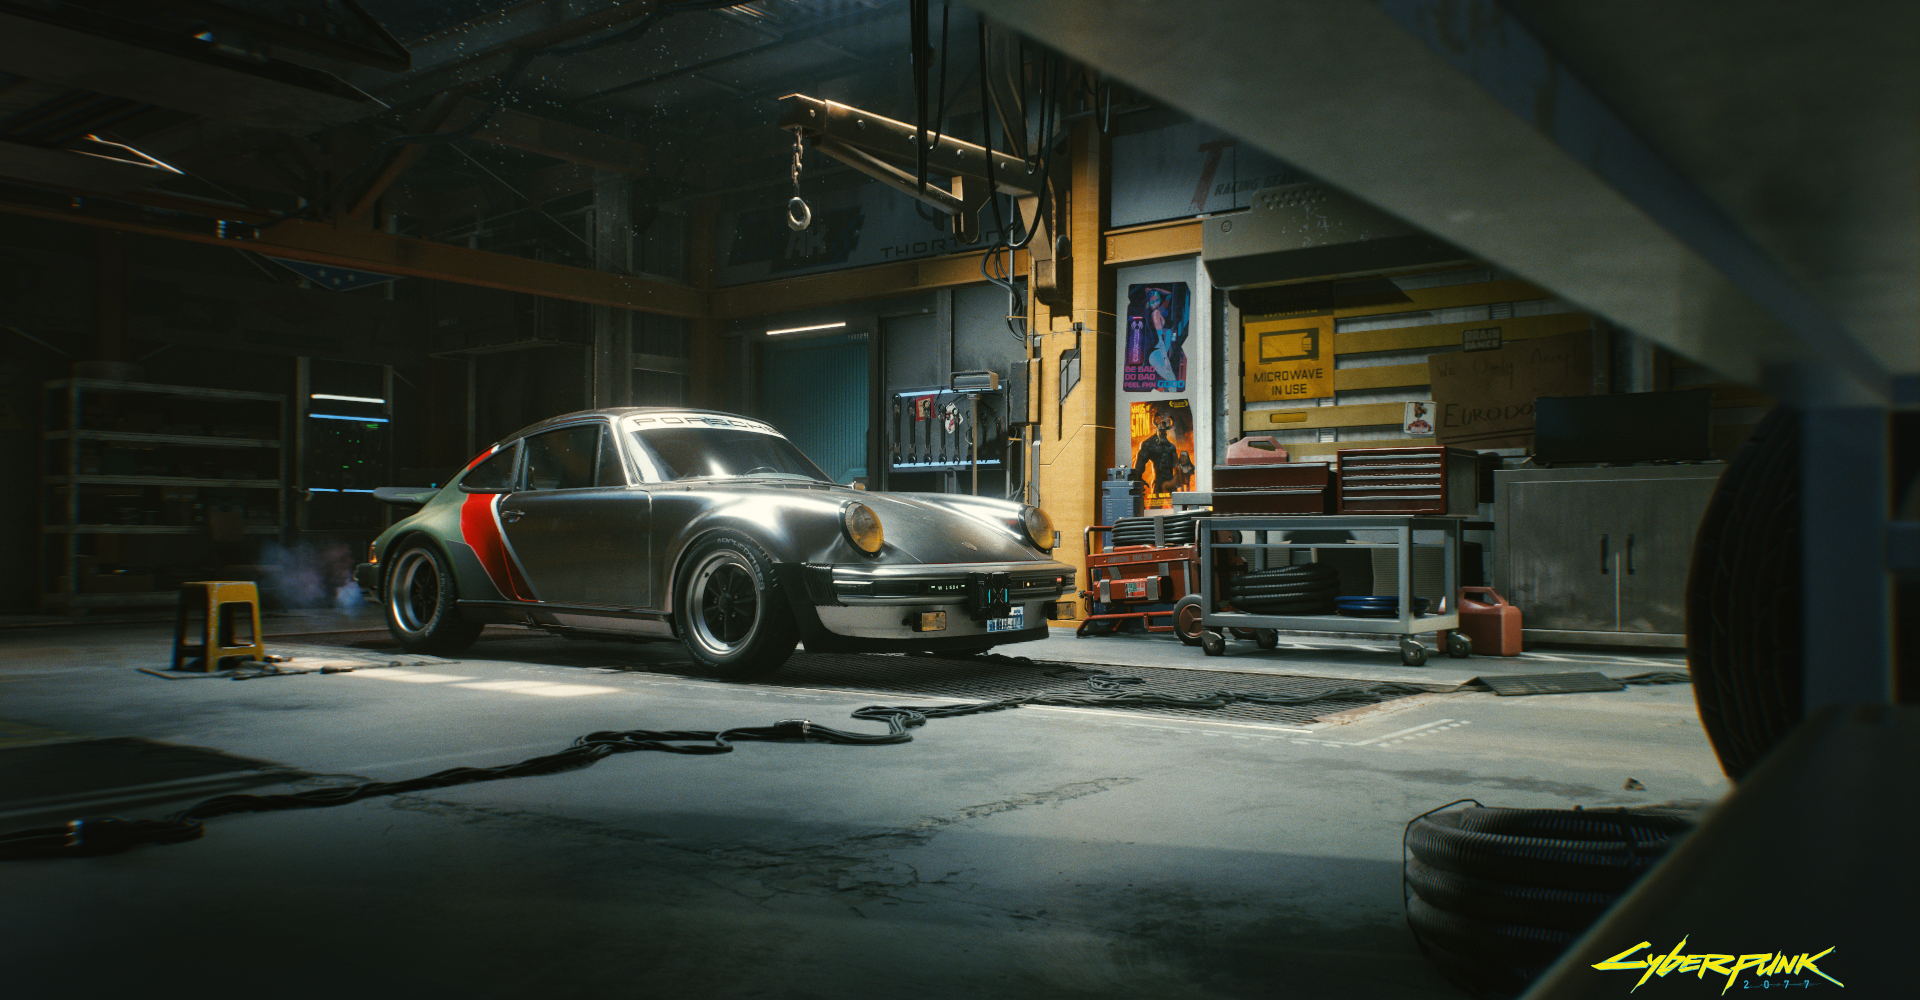 The only real car in Cyberpunk 2077 is this future-modded Porsche 911 Turbo